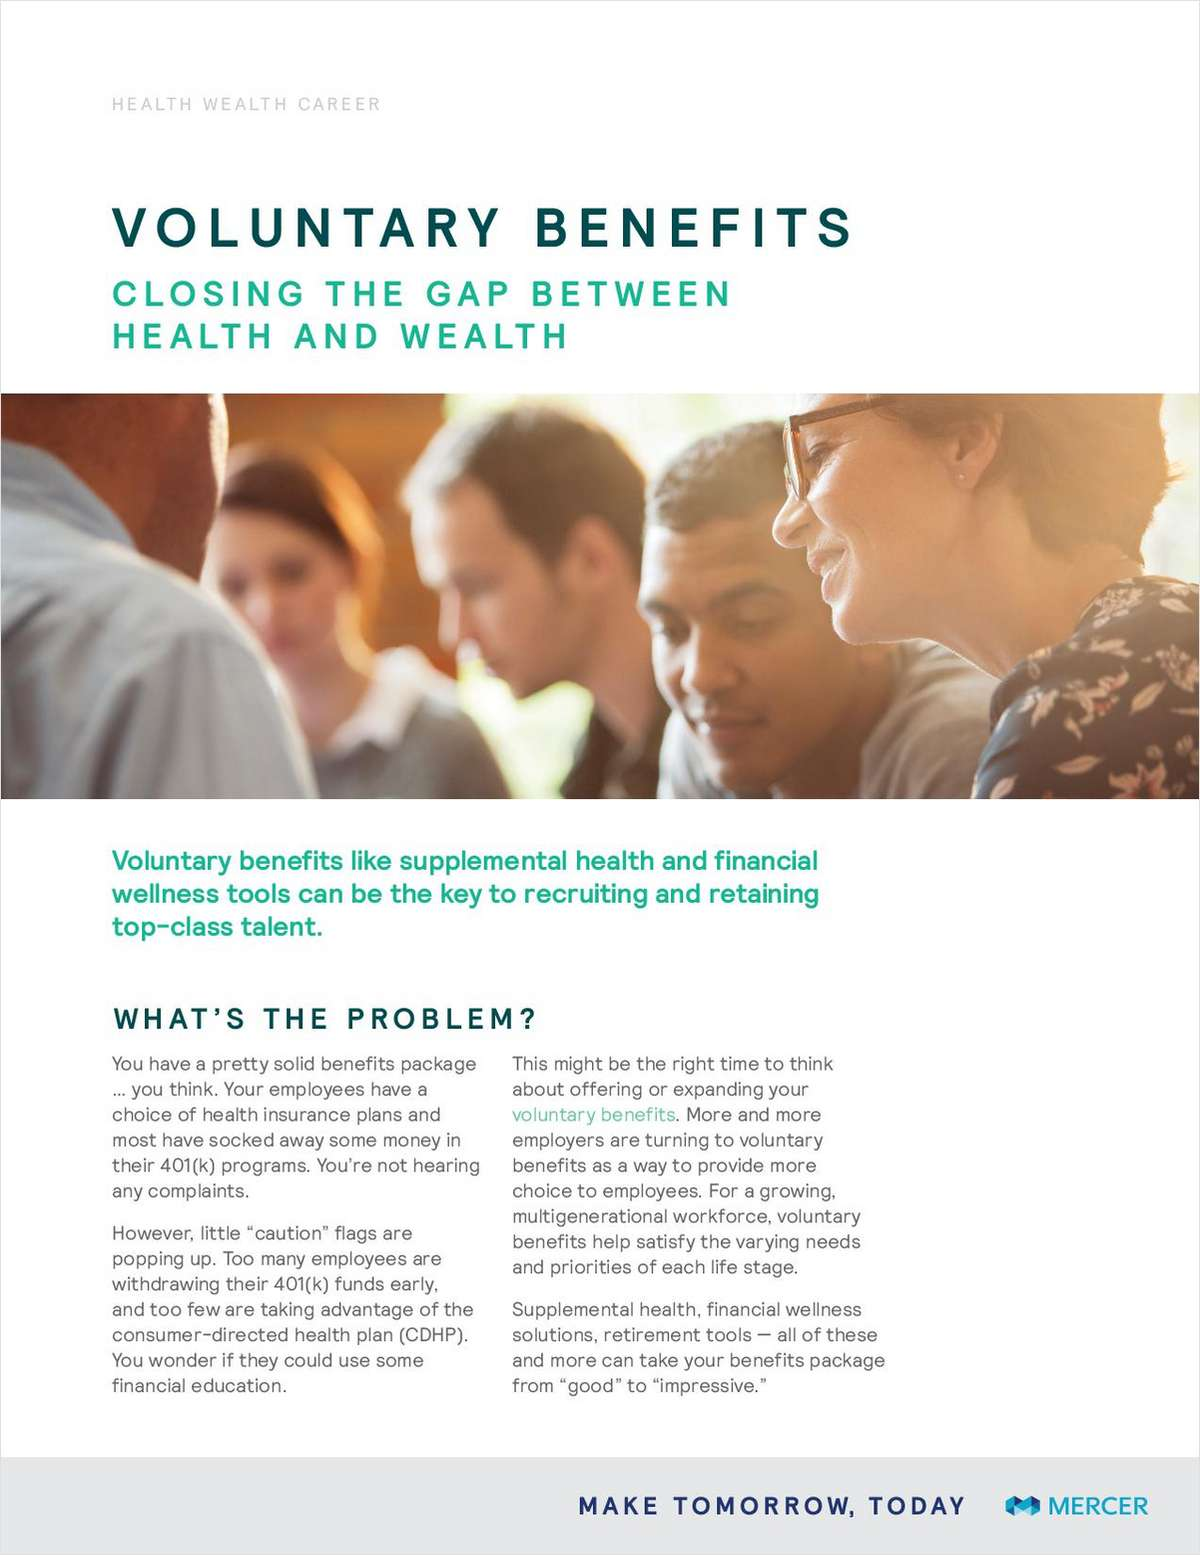 Voluntary Benefits: Closing the Gap Between Health and Wealth